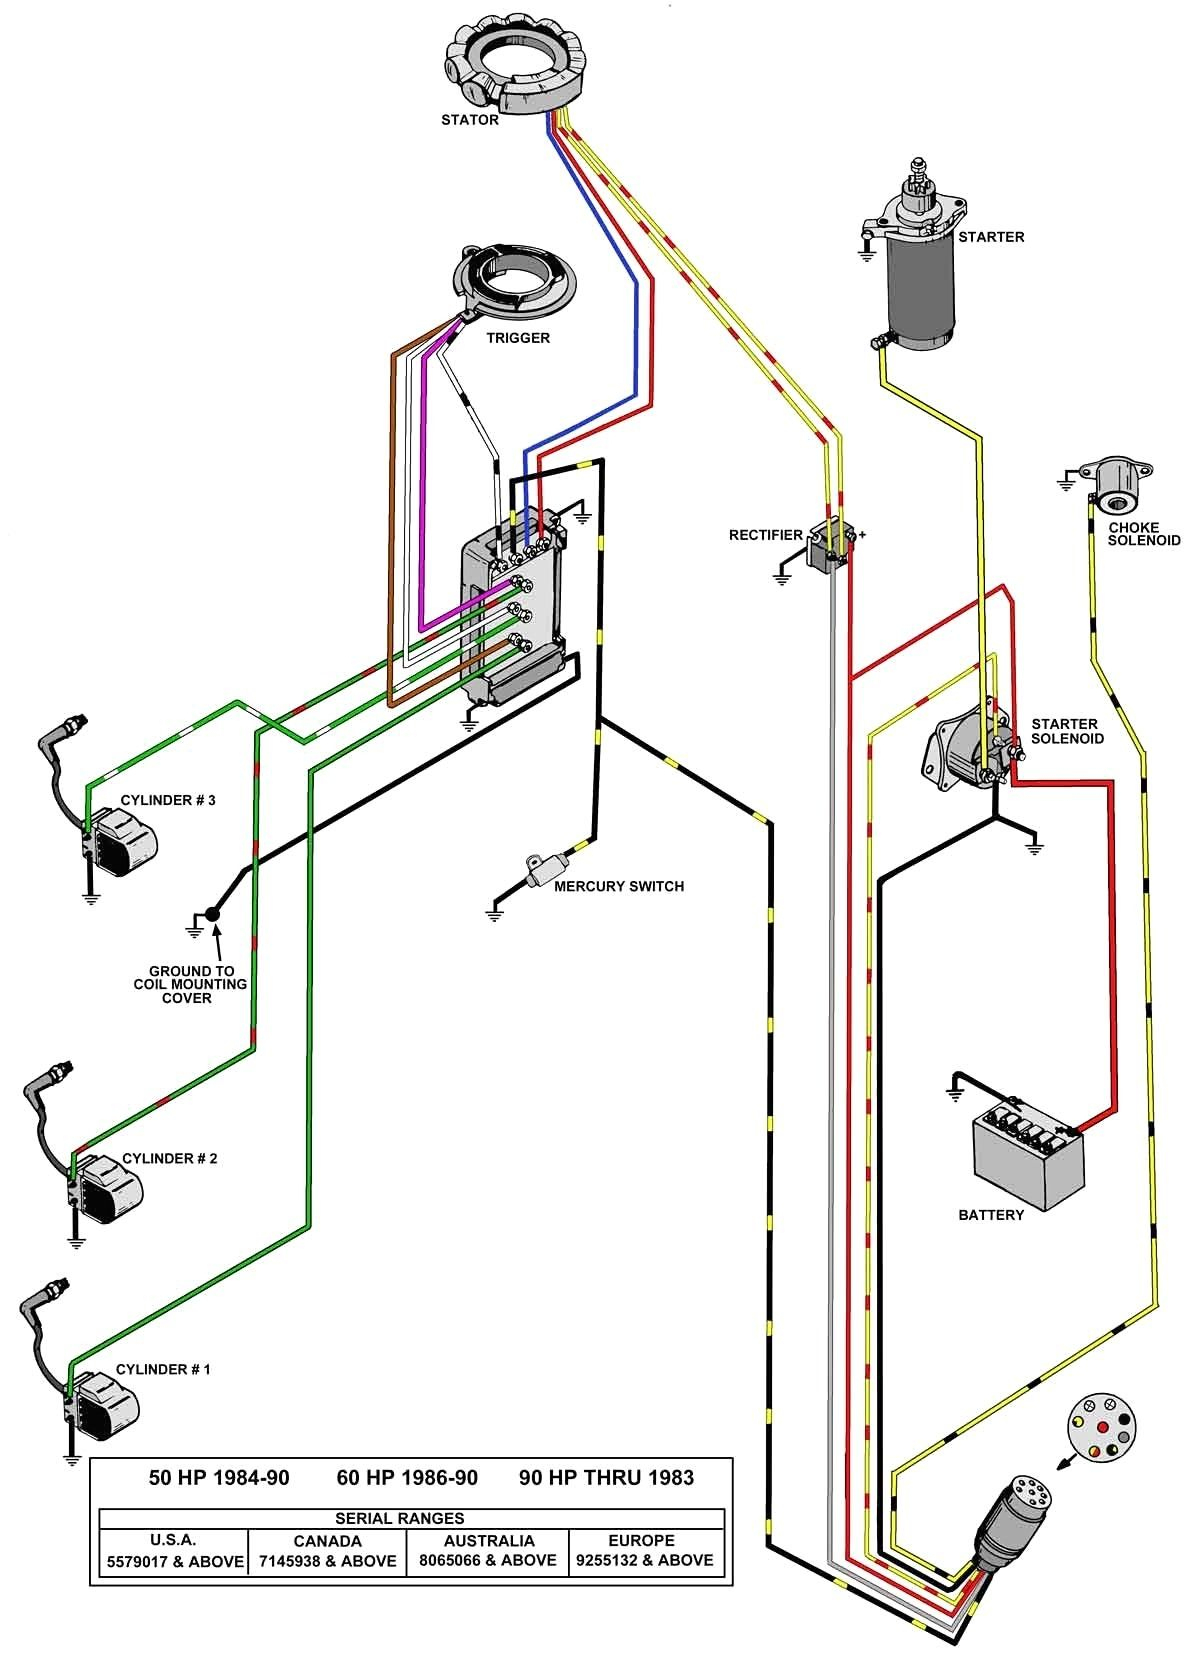 Ignition Switch Wiring Diagram - Wiring Diagrams Hubs - Ignition Switch Wiring Diagram